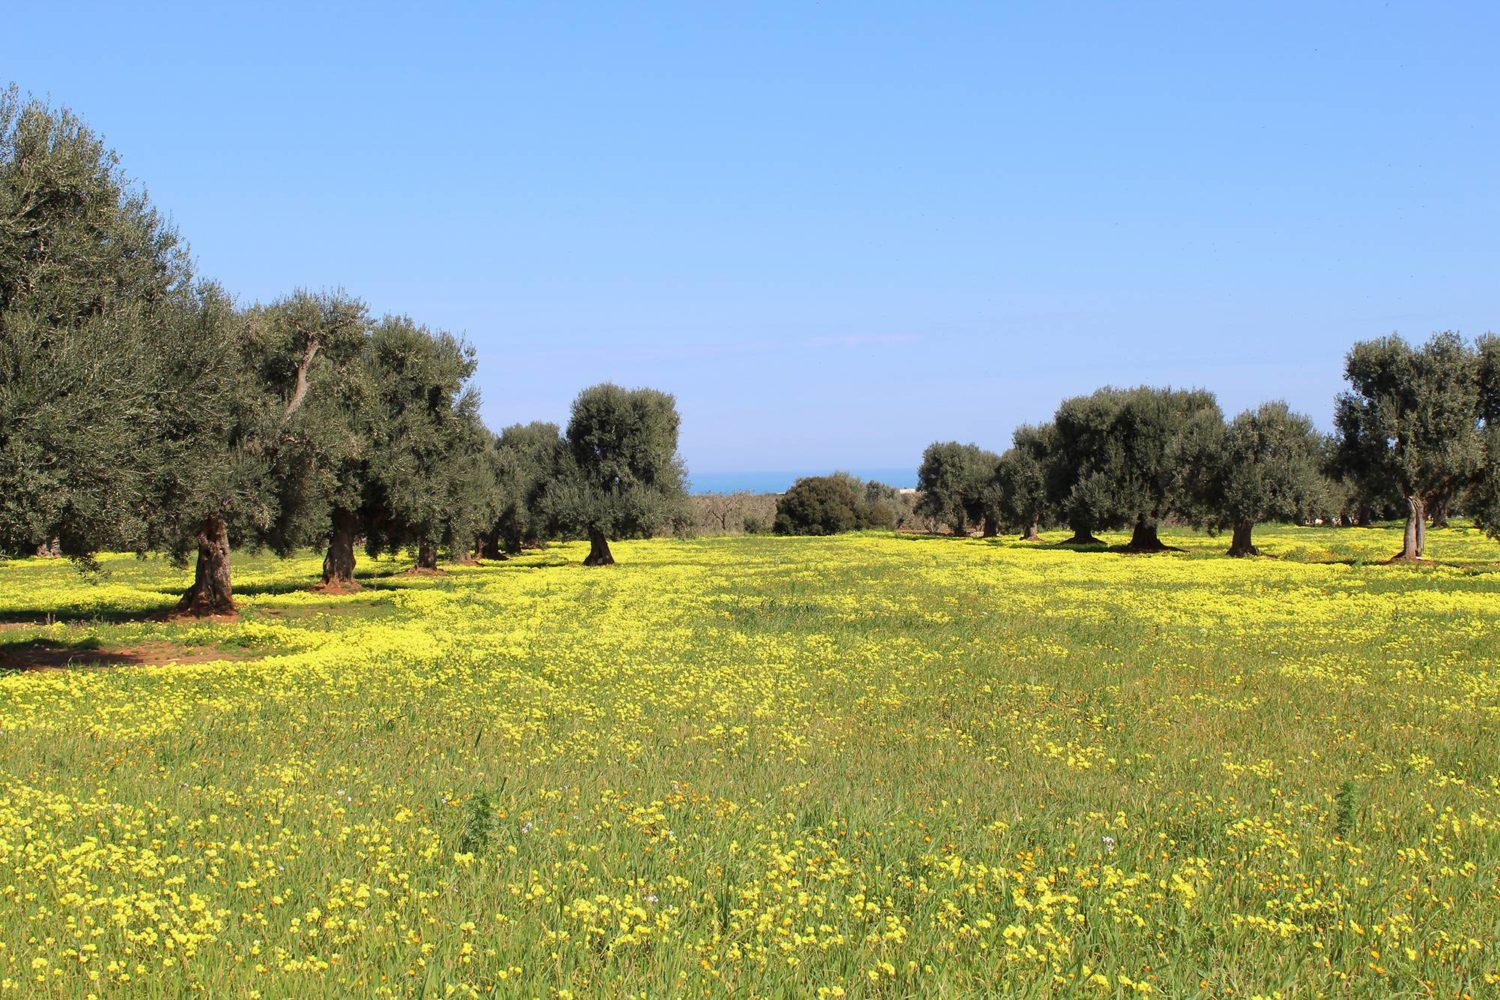 Olive oil trees tour in Puglia